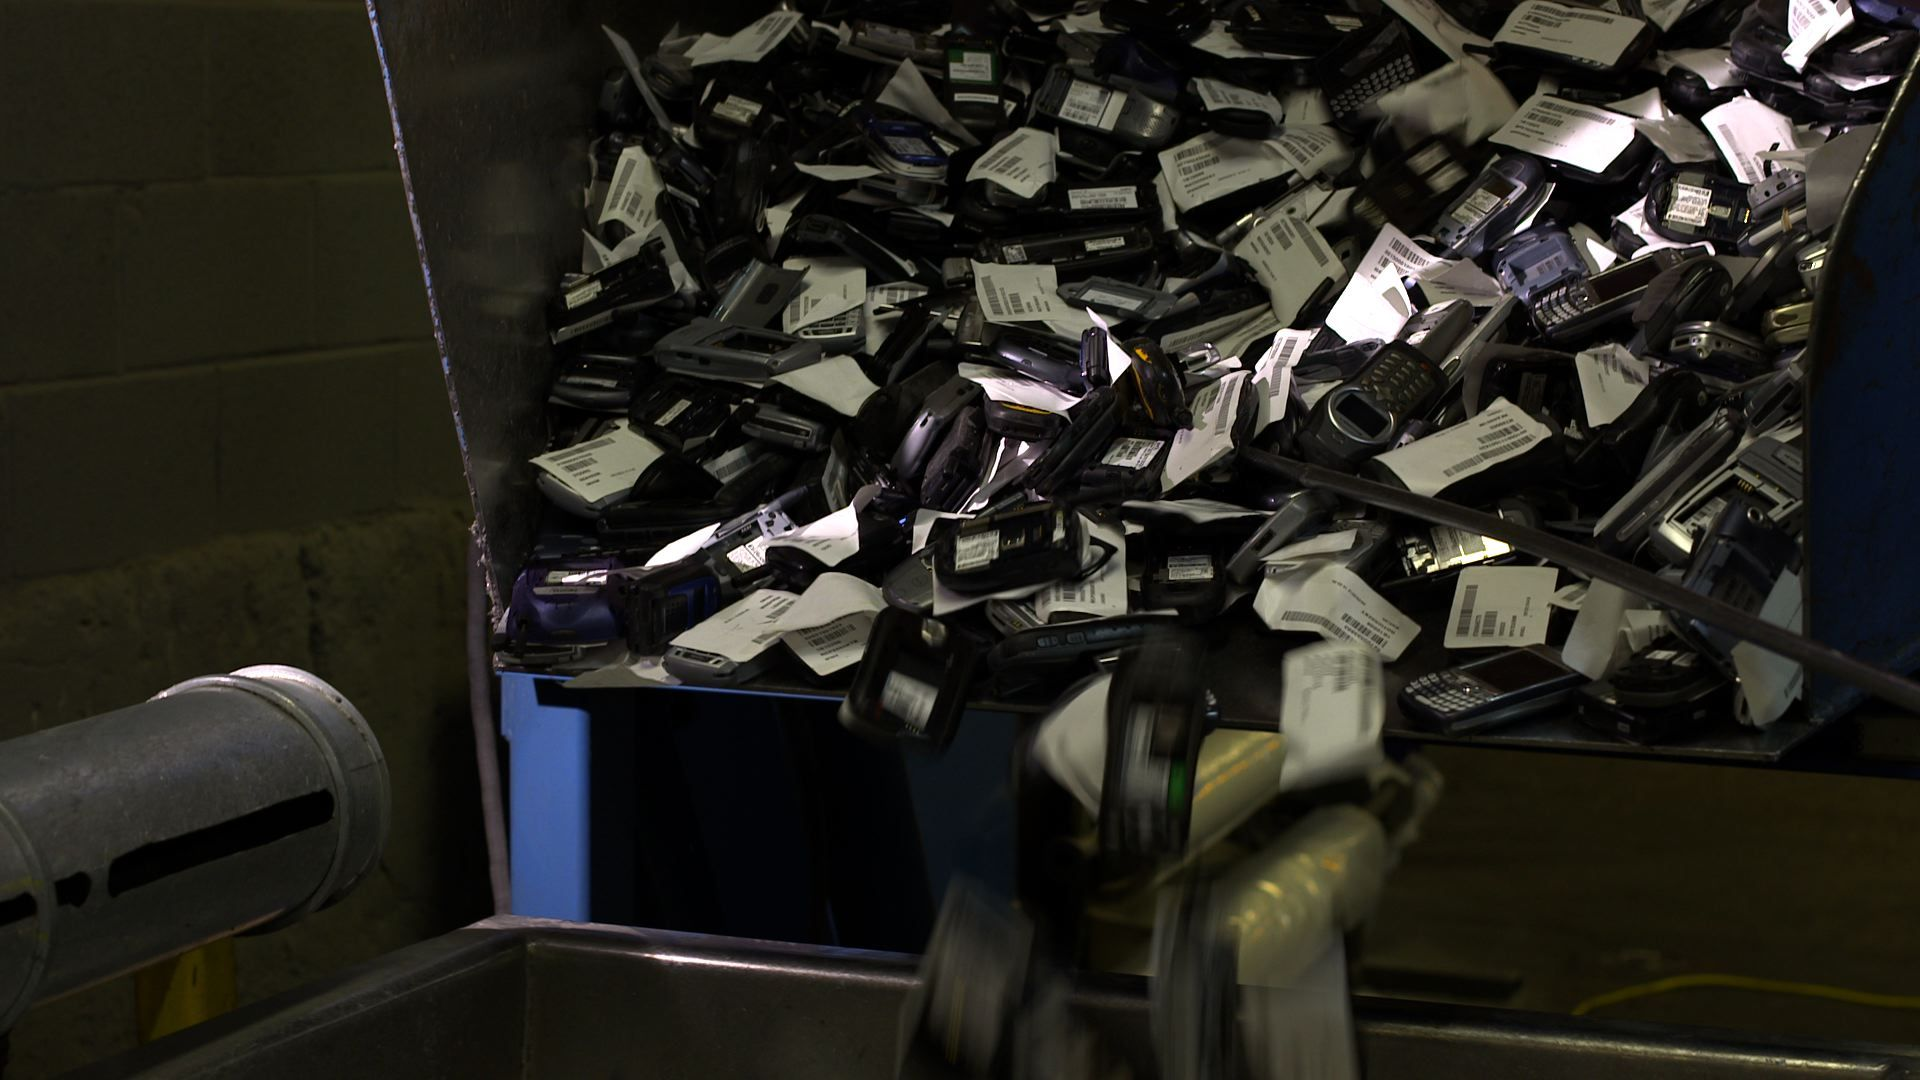 Sprint shatters GUINNESS WORLD RECORD(R) for the number of cellular phones recycled in one week (Photo: Sprint)